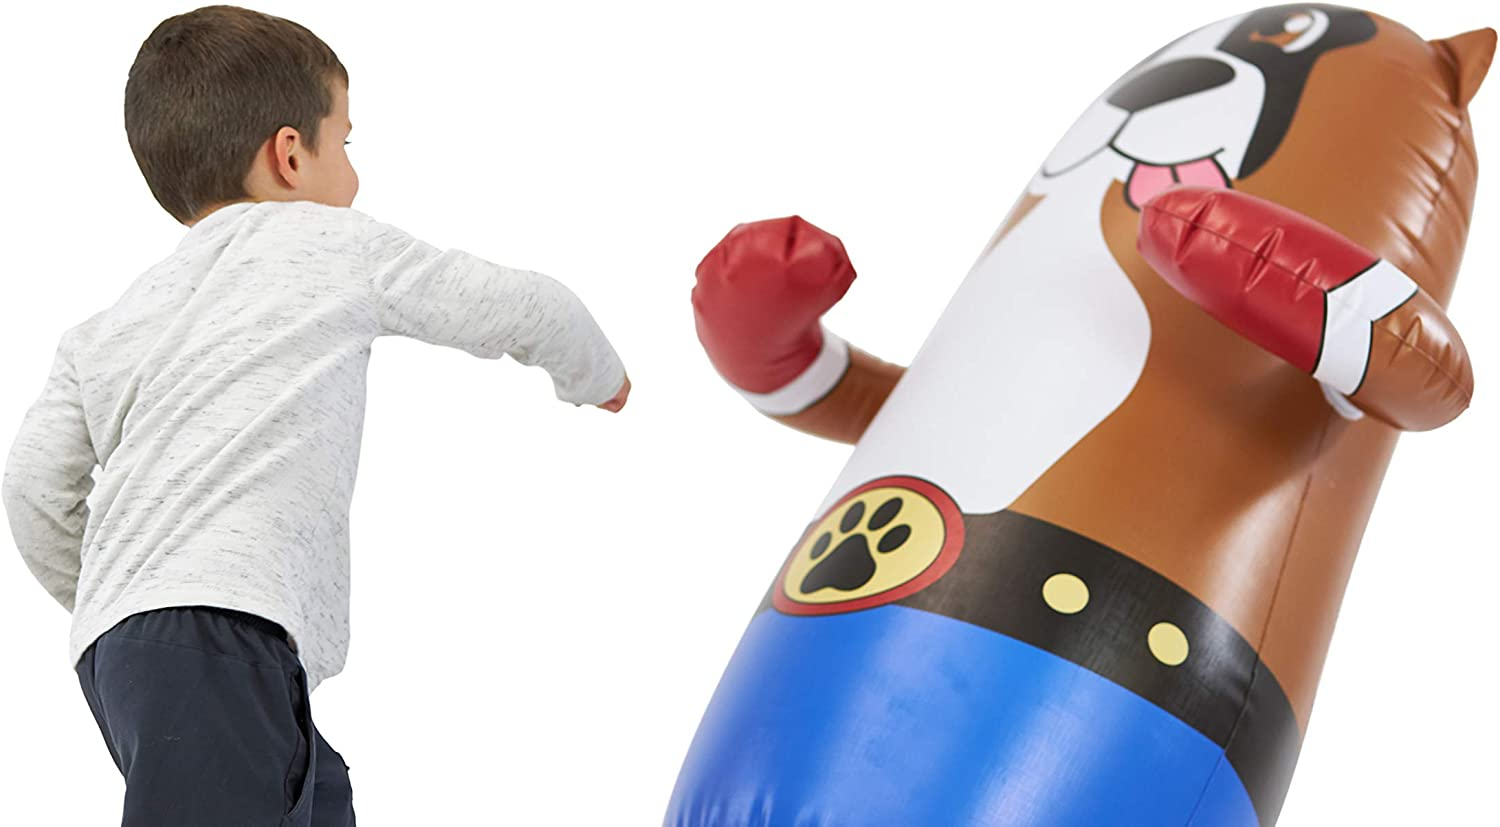 47inch Inflatable Punching Bag Kick Boxing Toy Wrestling Kids Sports Bop Child 1